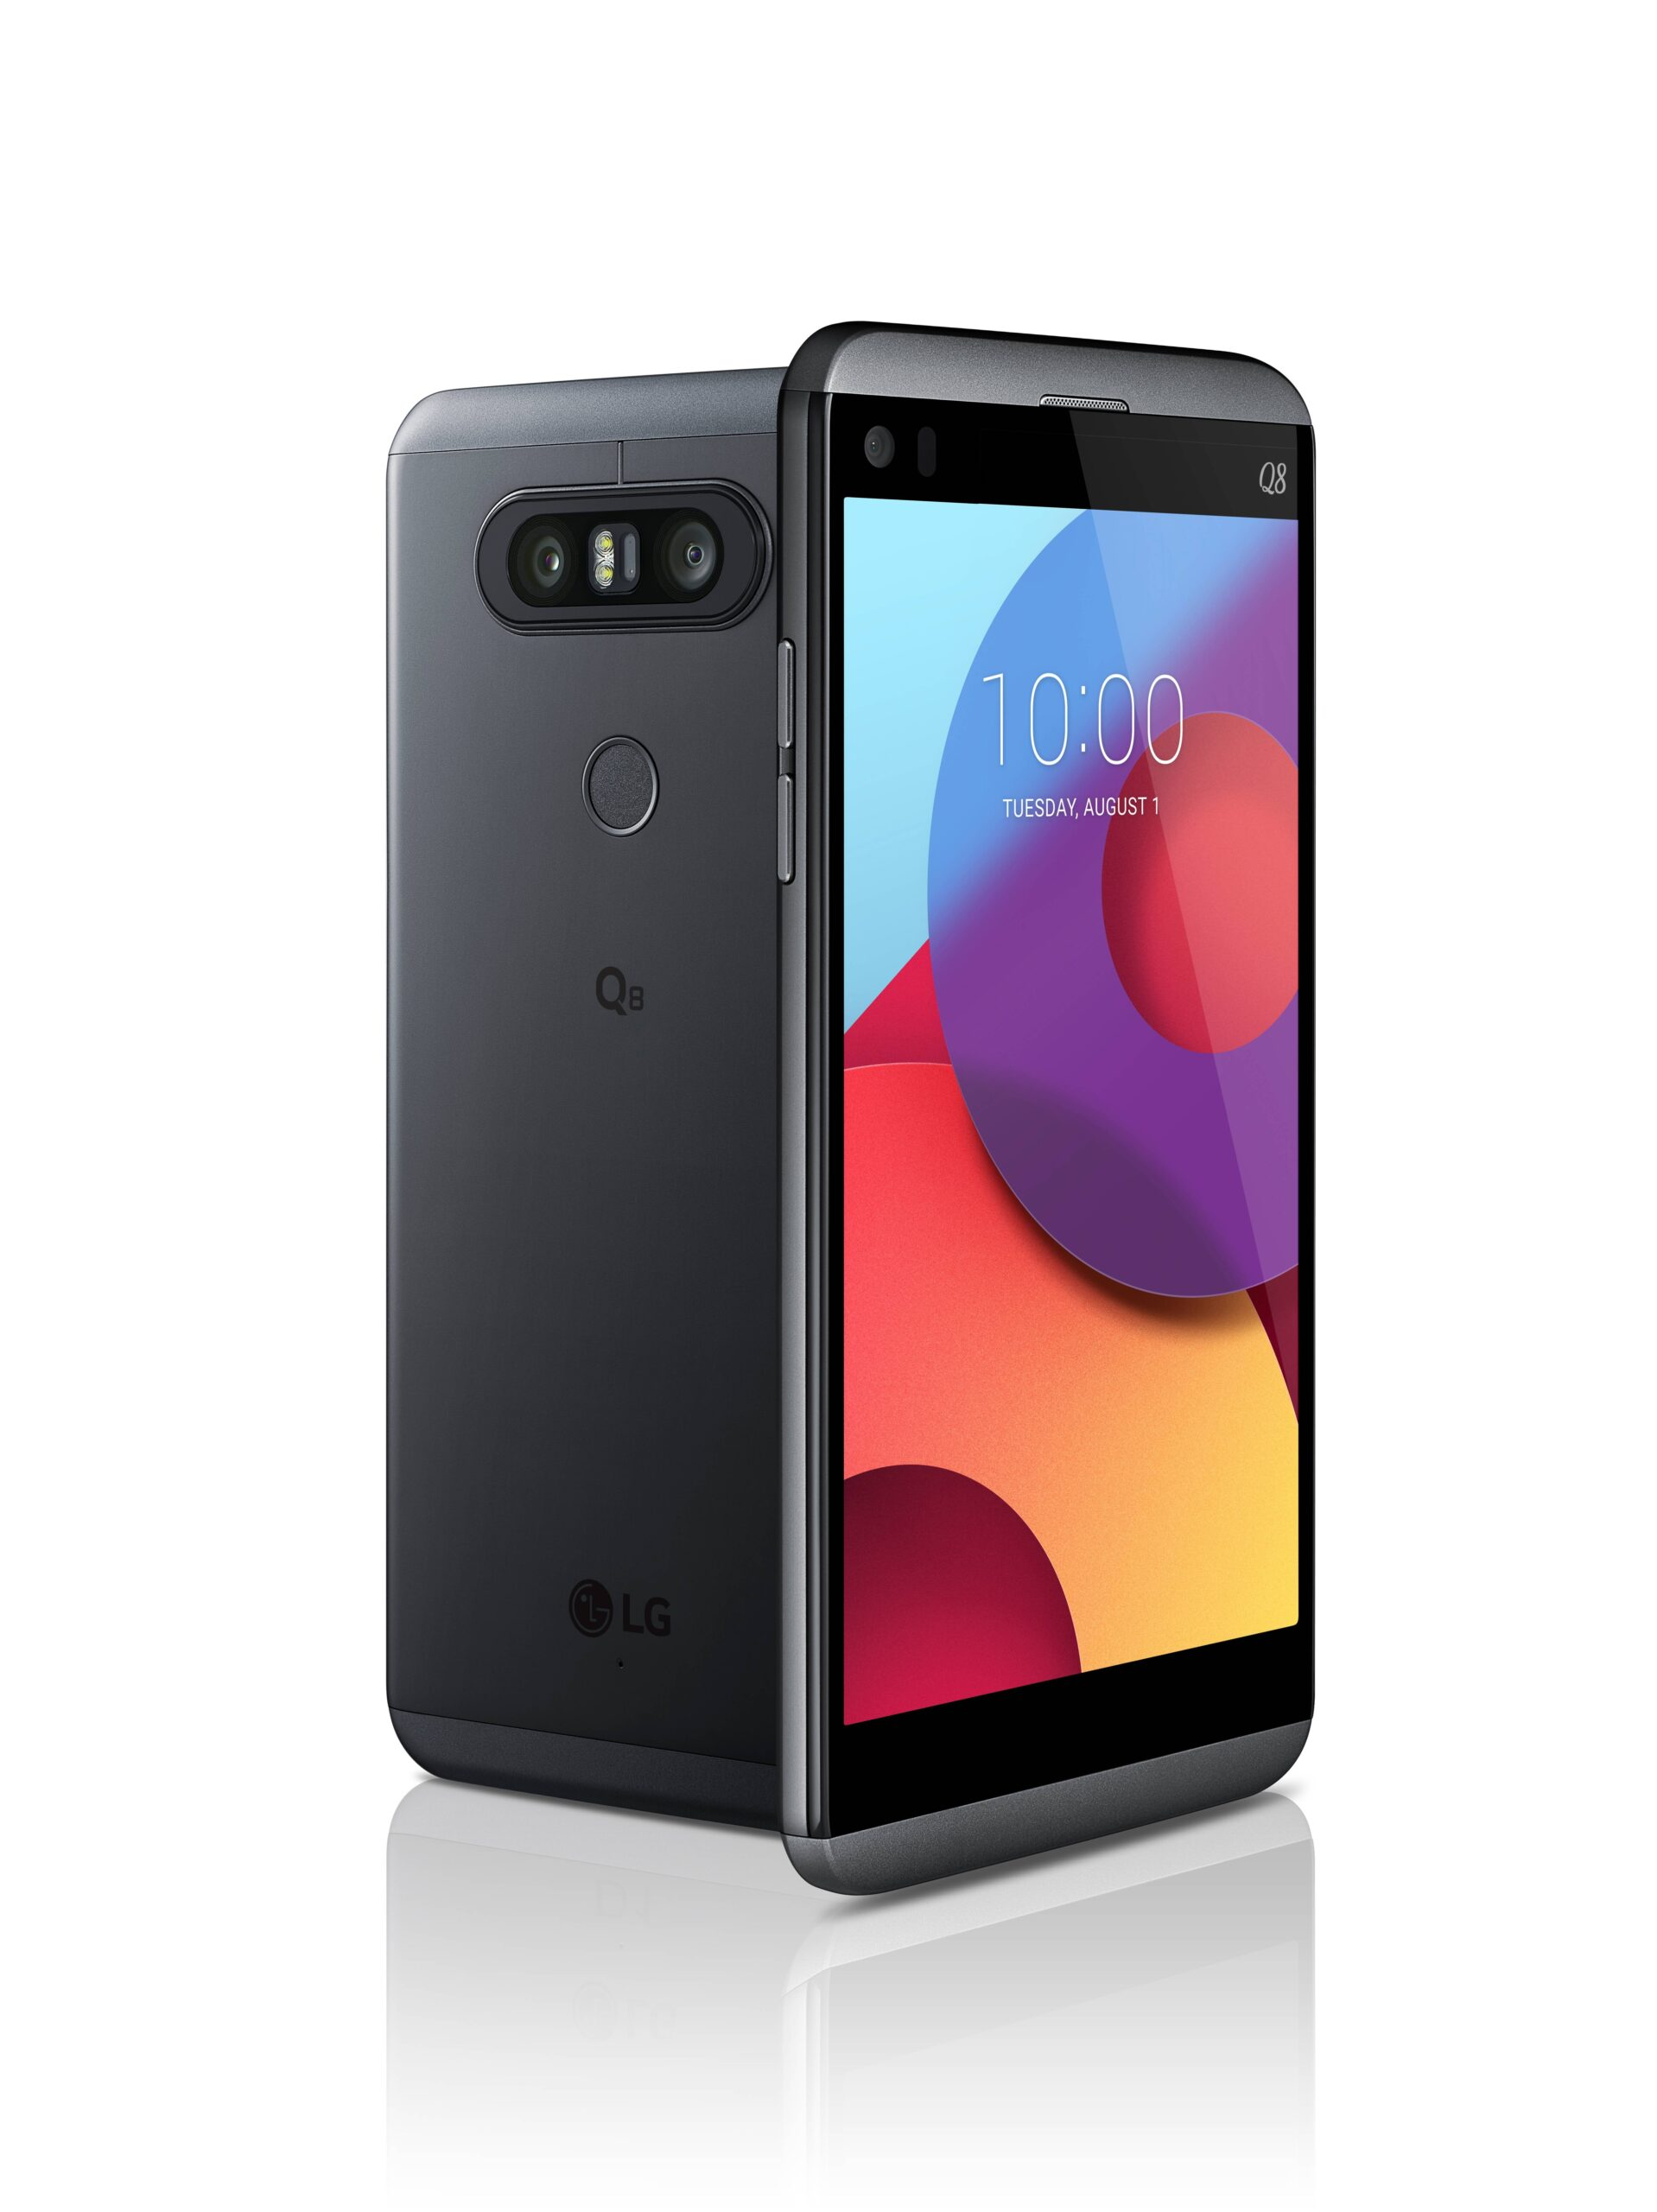 The front and rear view of the LG Q8 in Urban Titan